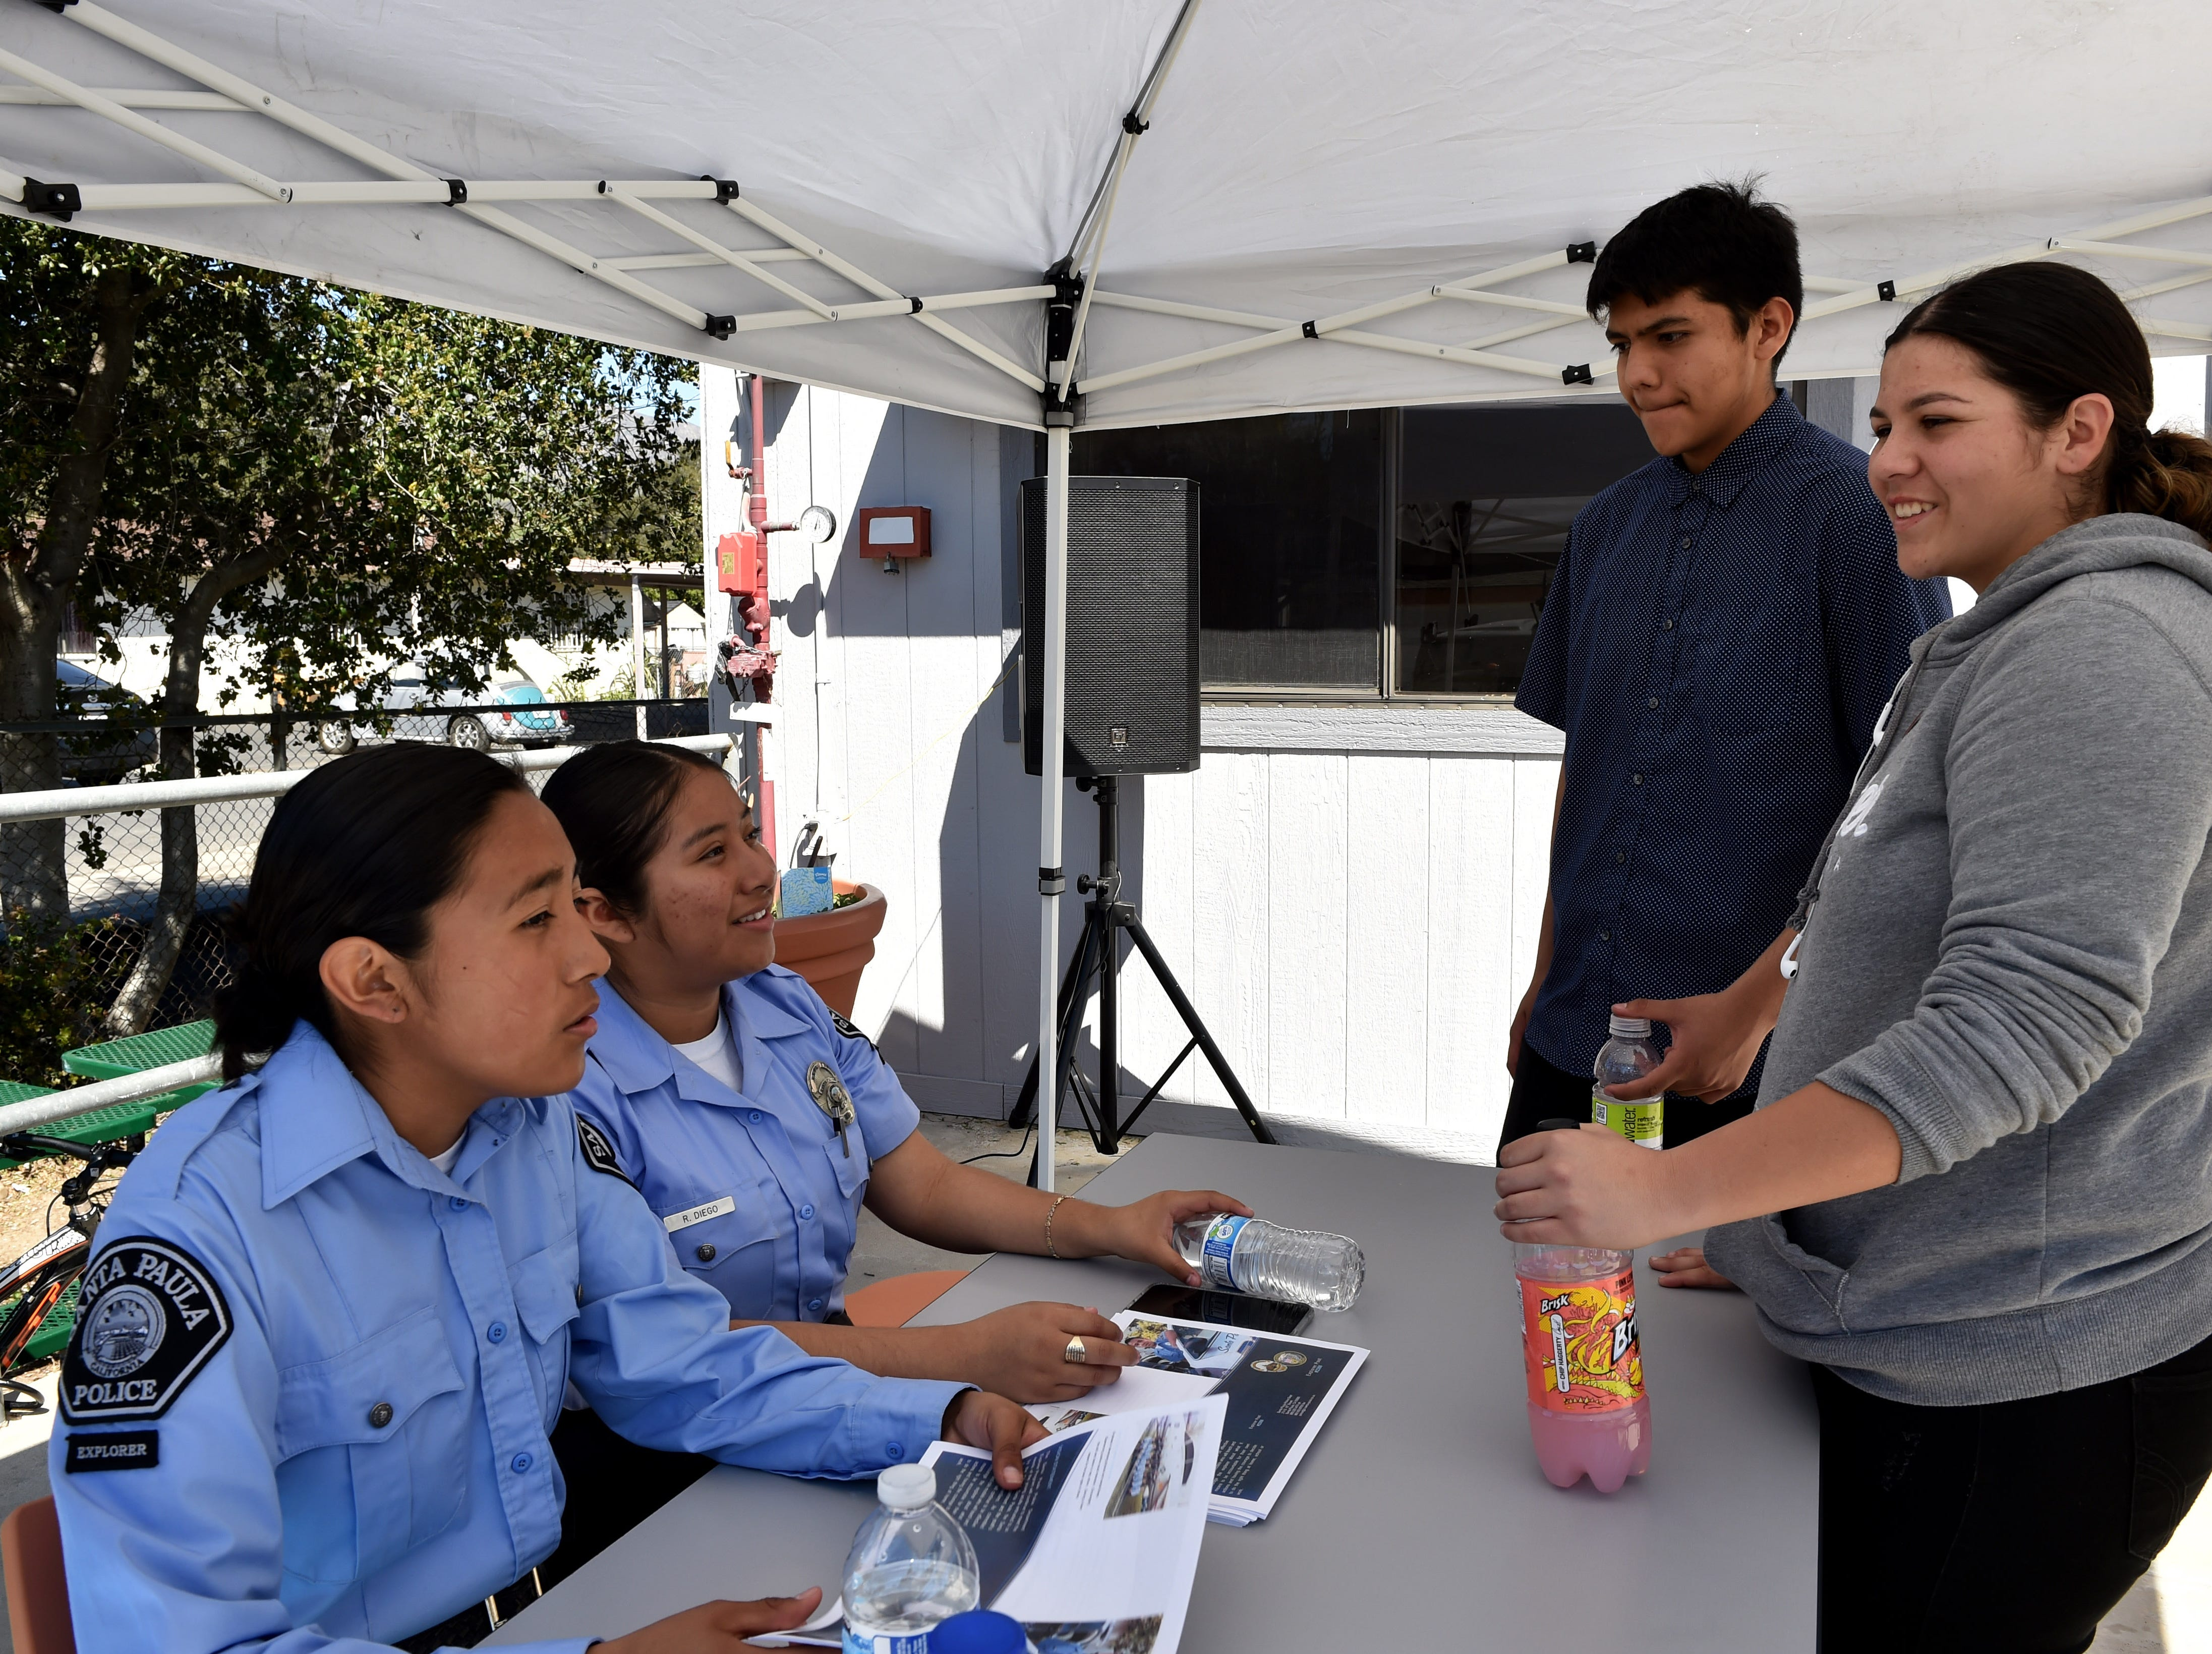 From left, Santa Paula youth Explorers Daysi Gonzalez and Roxana Diega speak with teens Alan Carrillo and Navaeh Delgadillo during an event put on at the Santa Paula Police Department's youth center on Friday.